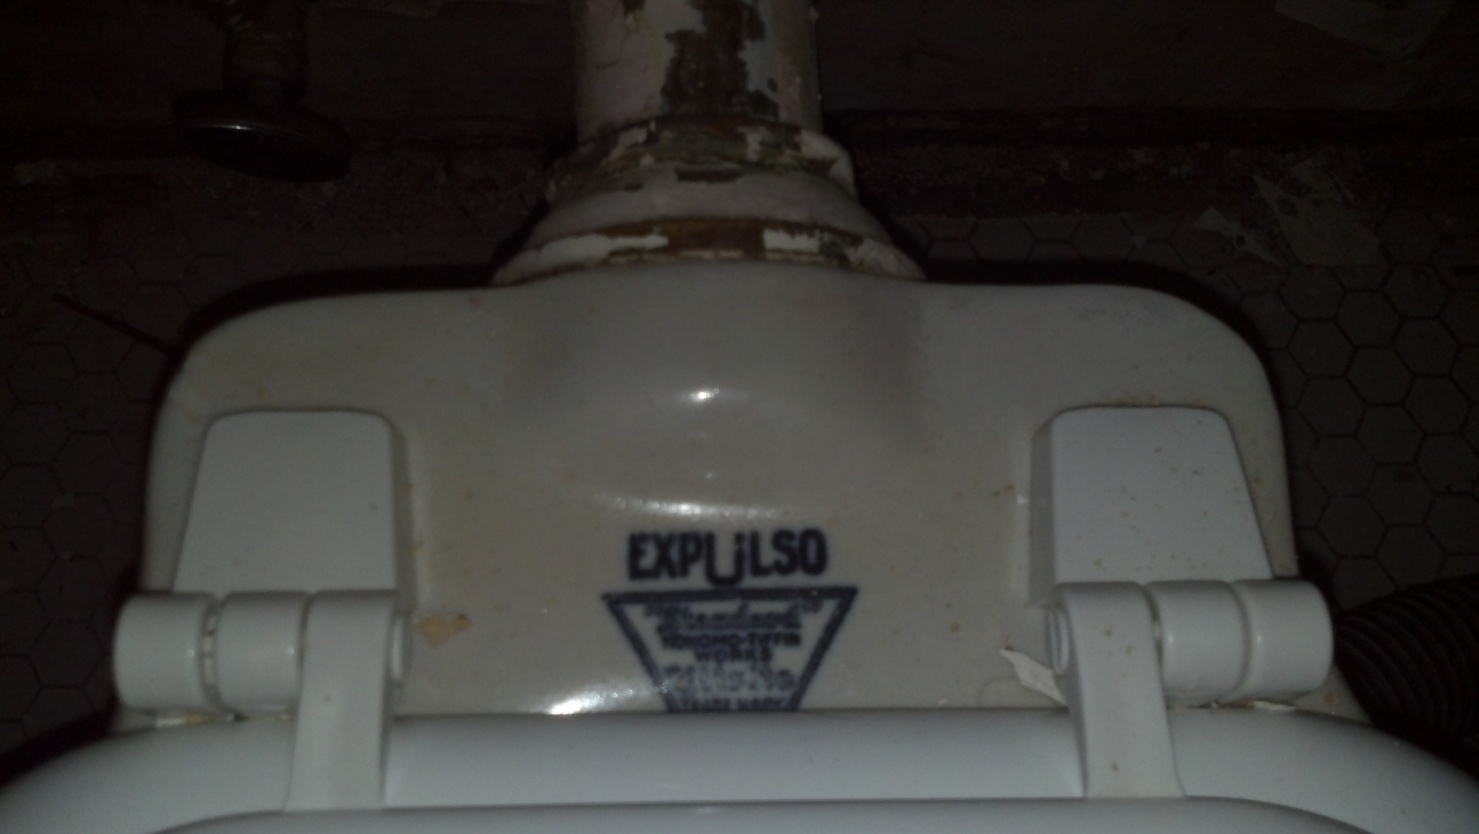 """Old """"Expulso"""" Toilet, never run into one quite like this before.-2012-05-01_16-23-34_45.jpg"""